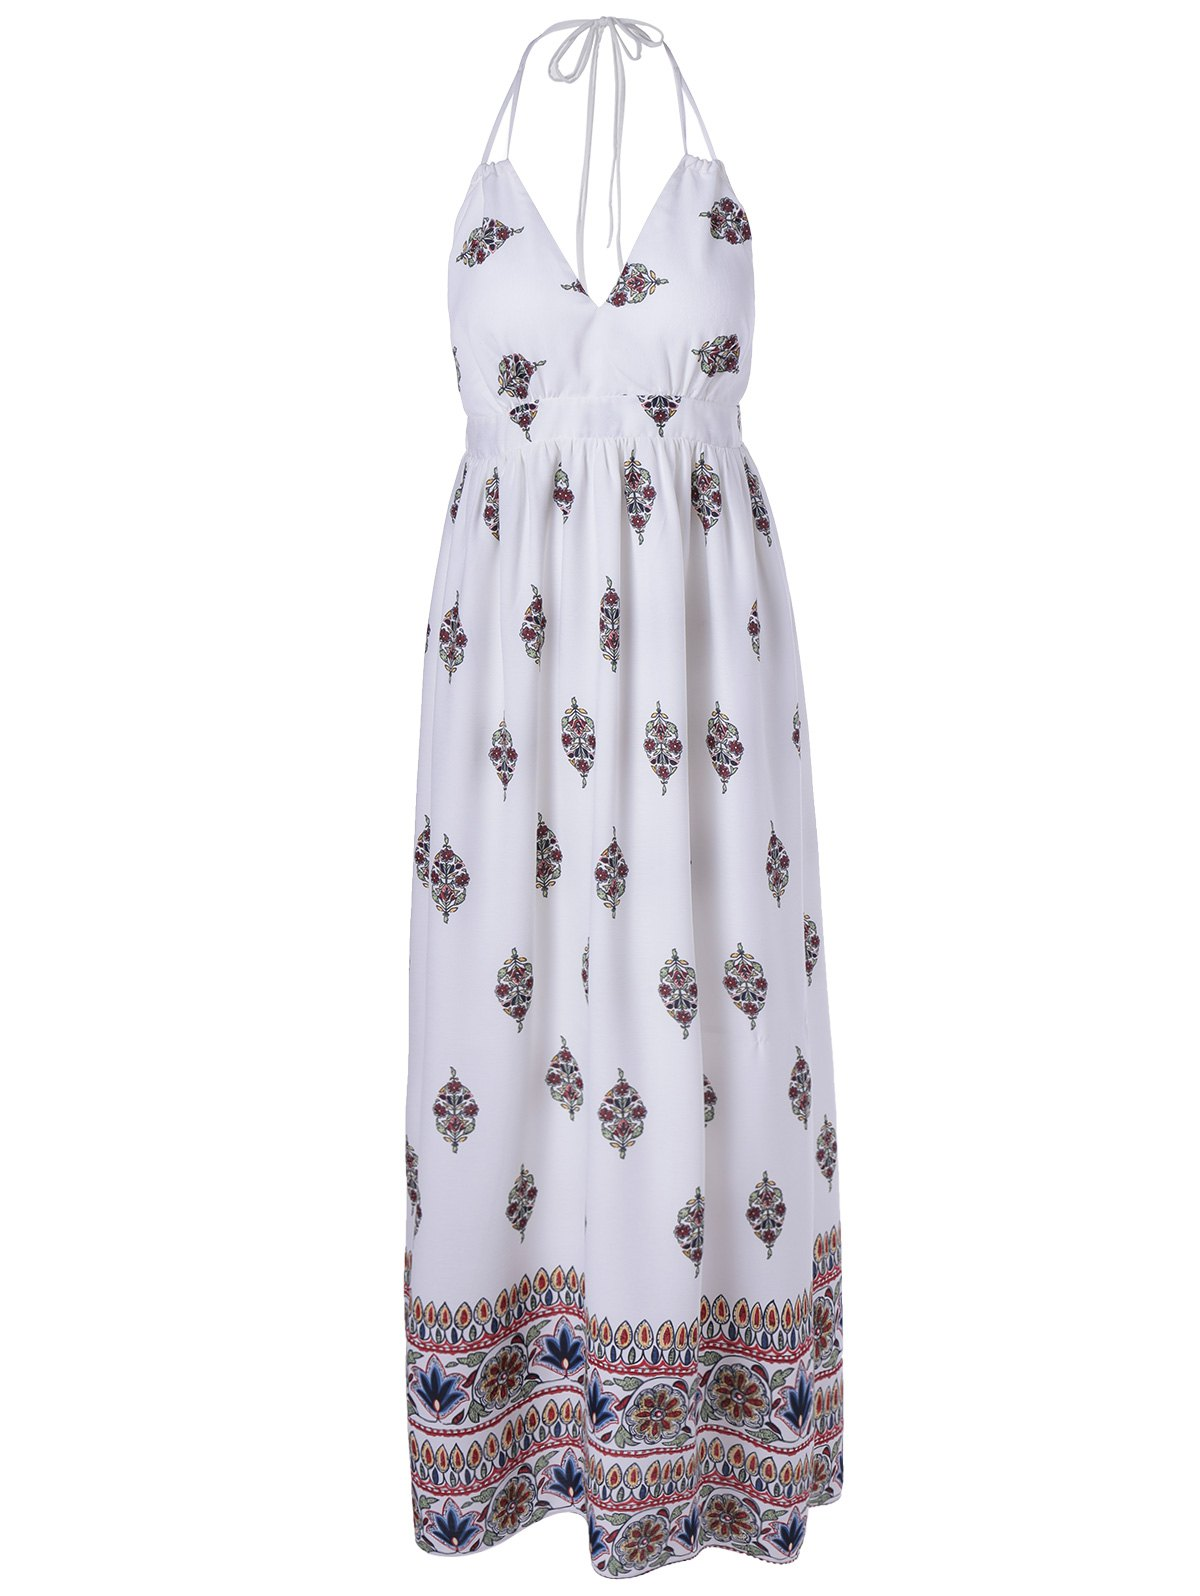 Elegant Women's Halter Backless Printing Dress